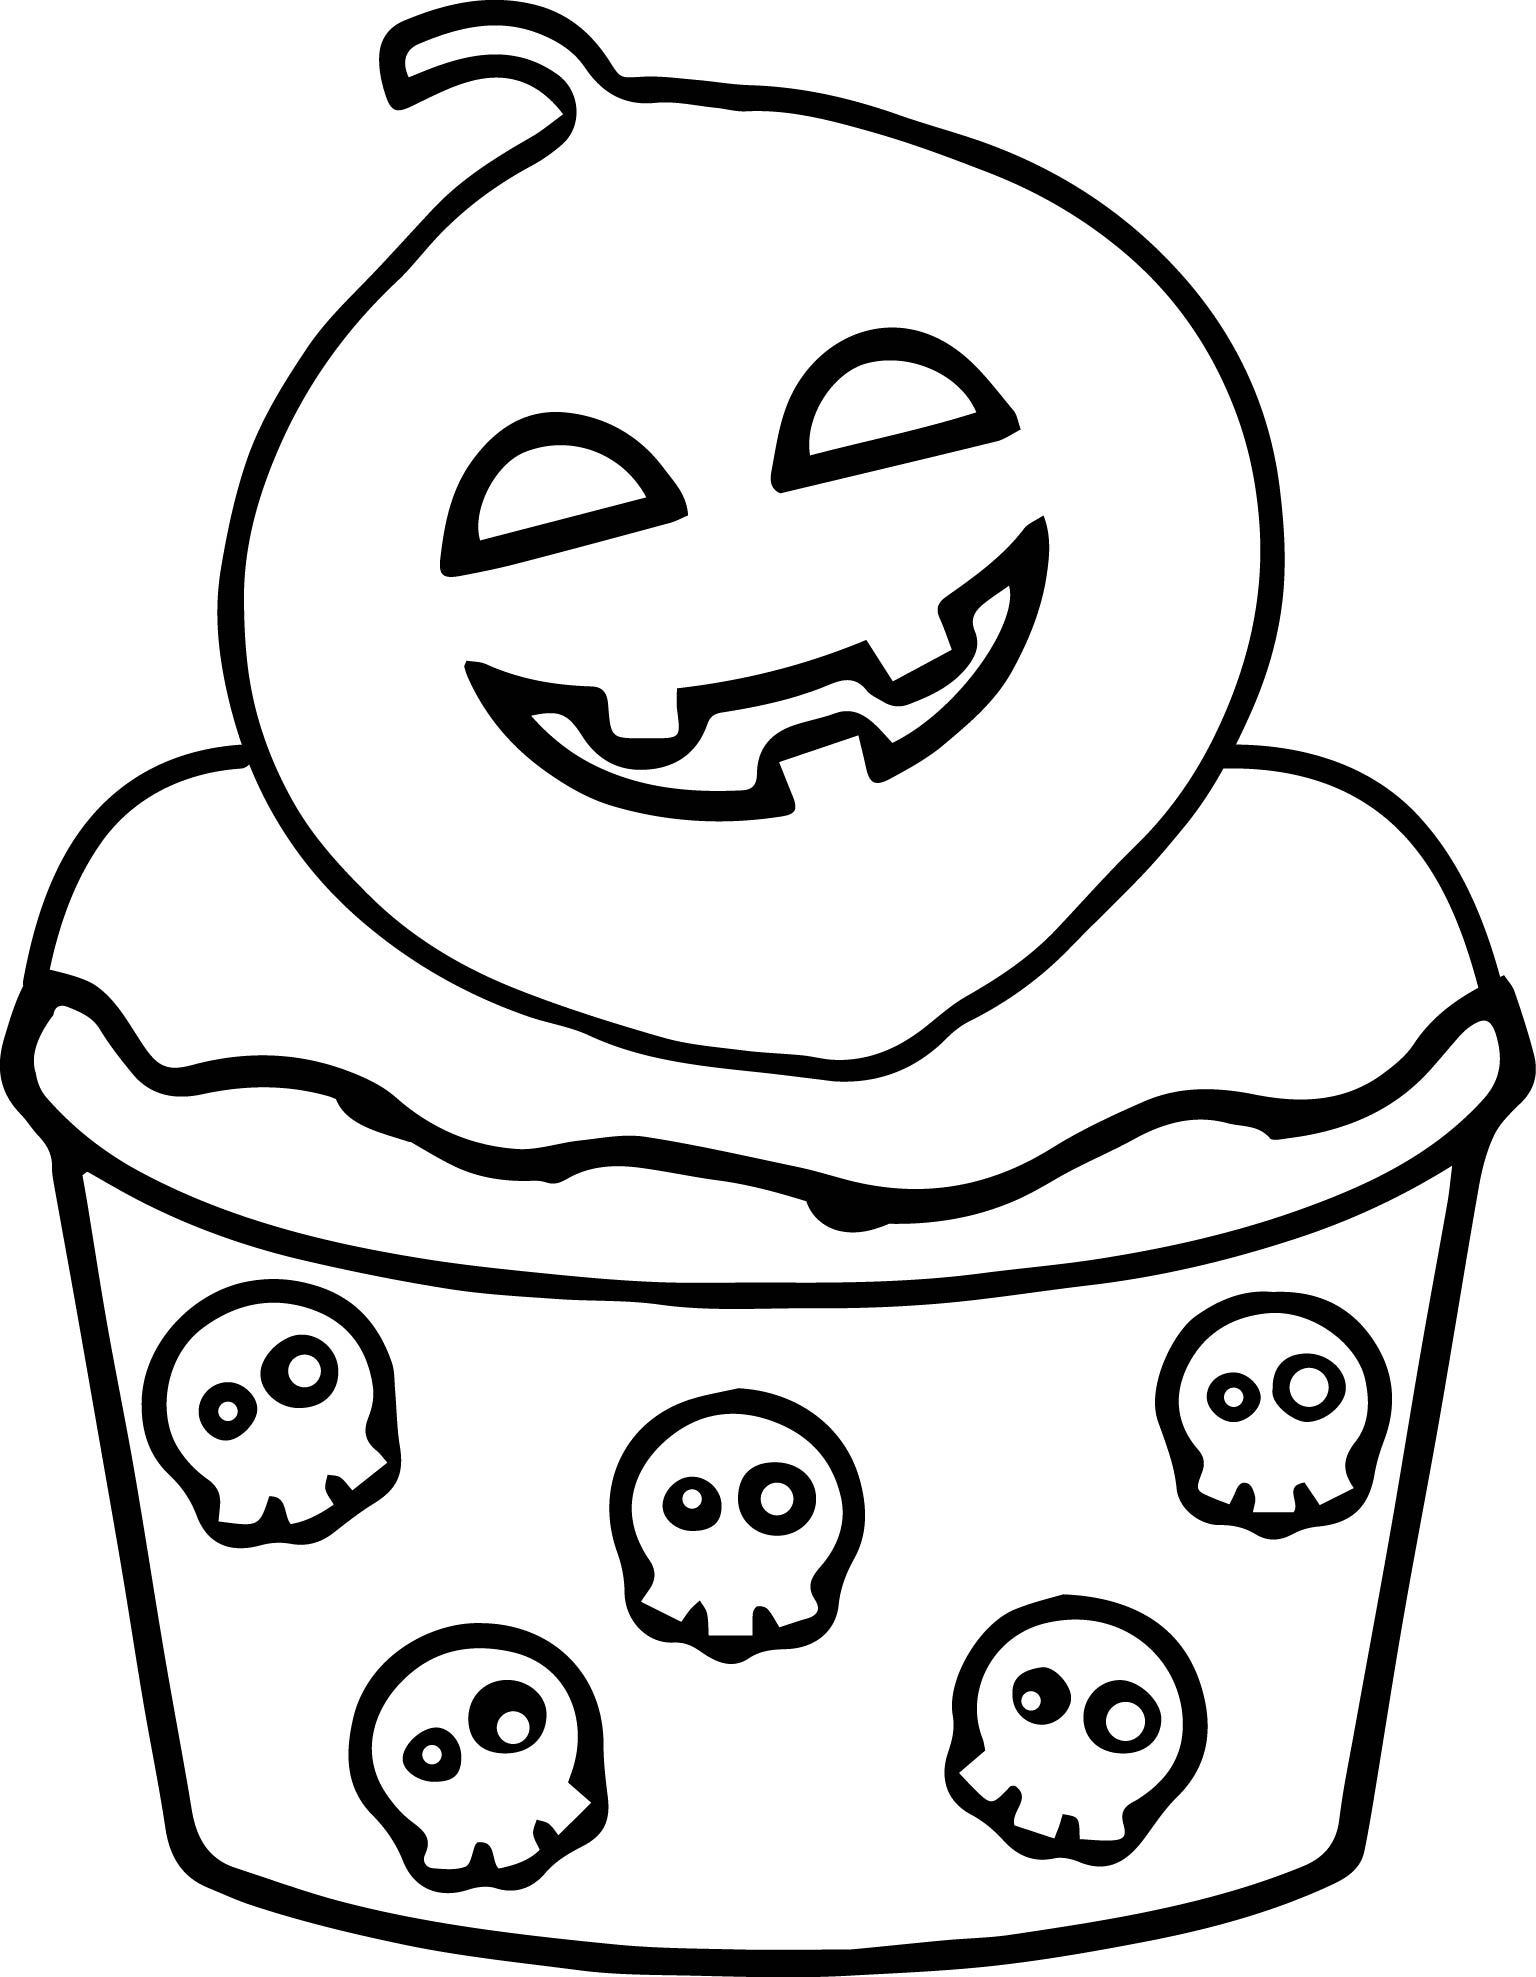 scream halloween cupcake coloring page wecoloringpage